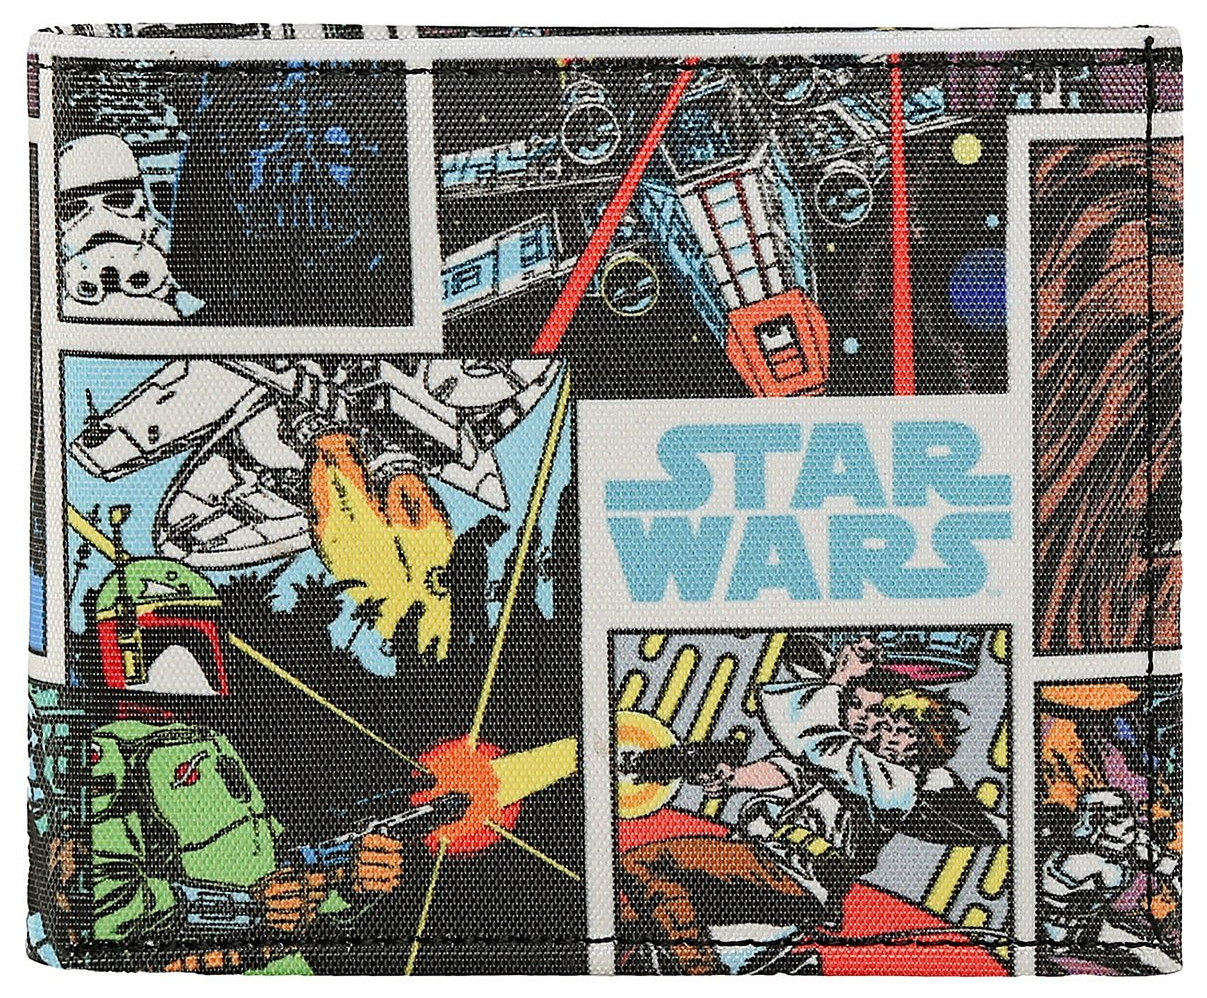 Star Wars Collage Bi-Fold Wallet-Bombaymerch- www.superherotoystore.com-Wallet - 1